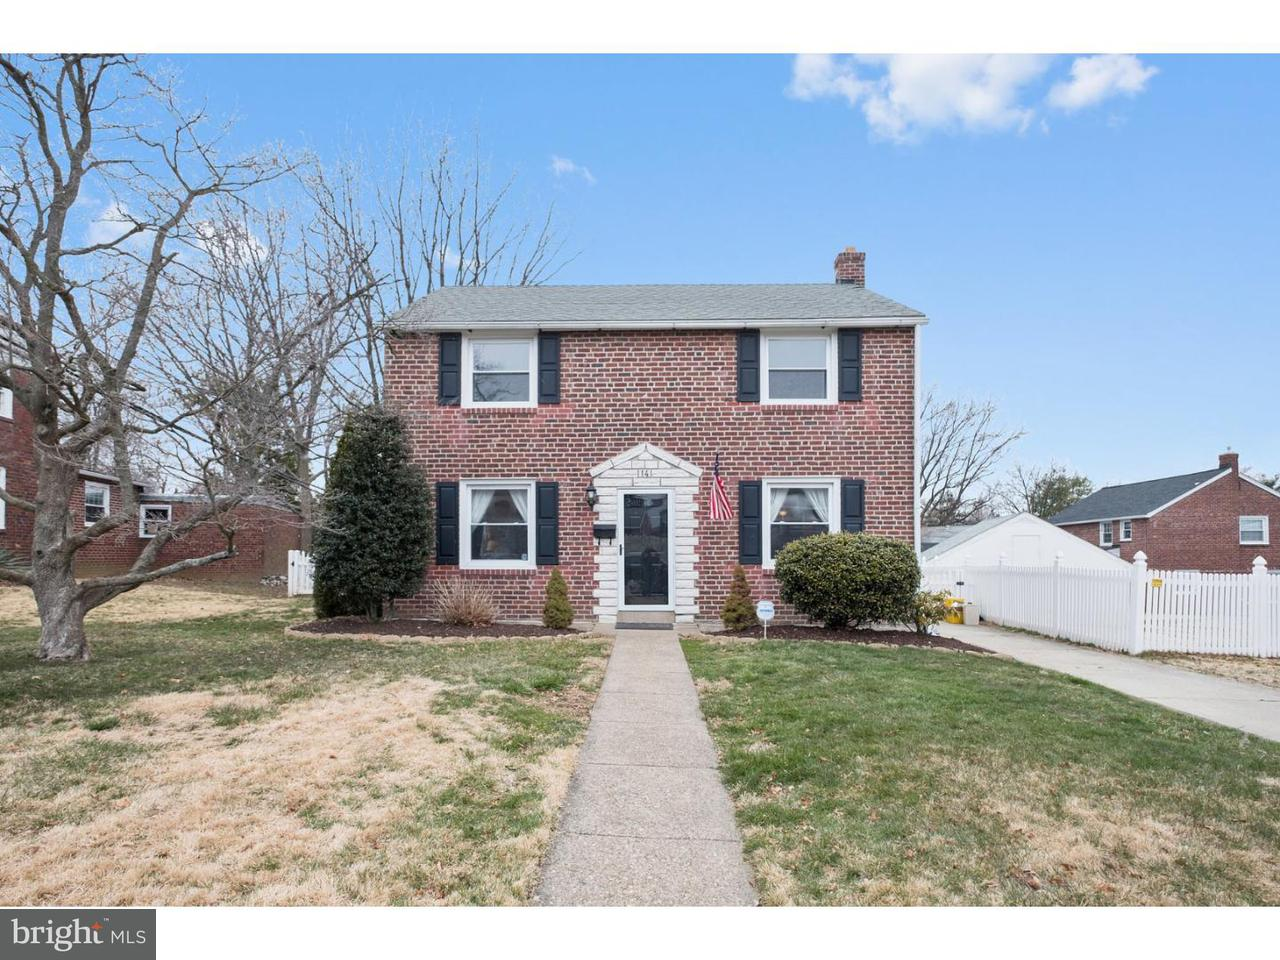 Single Family Home for Sale at 14 BARBARA Drive Springfield, Pennsylvania 19064 United States